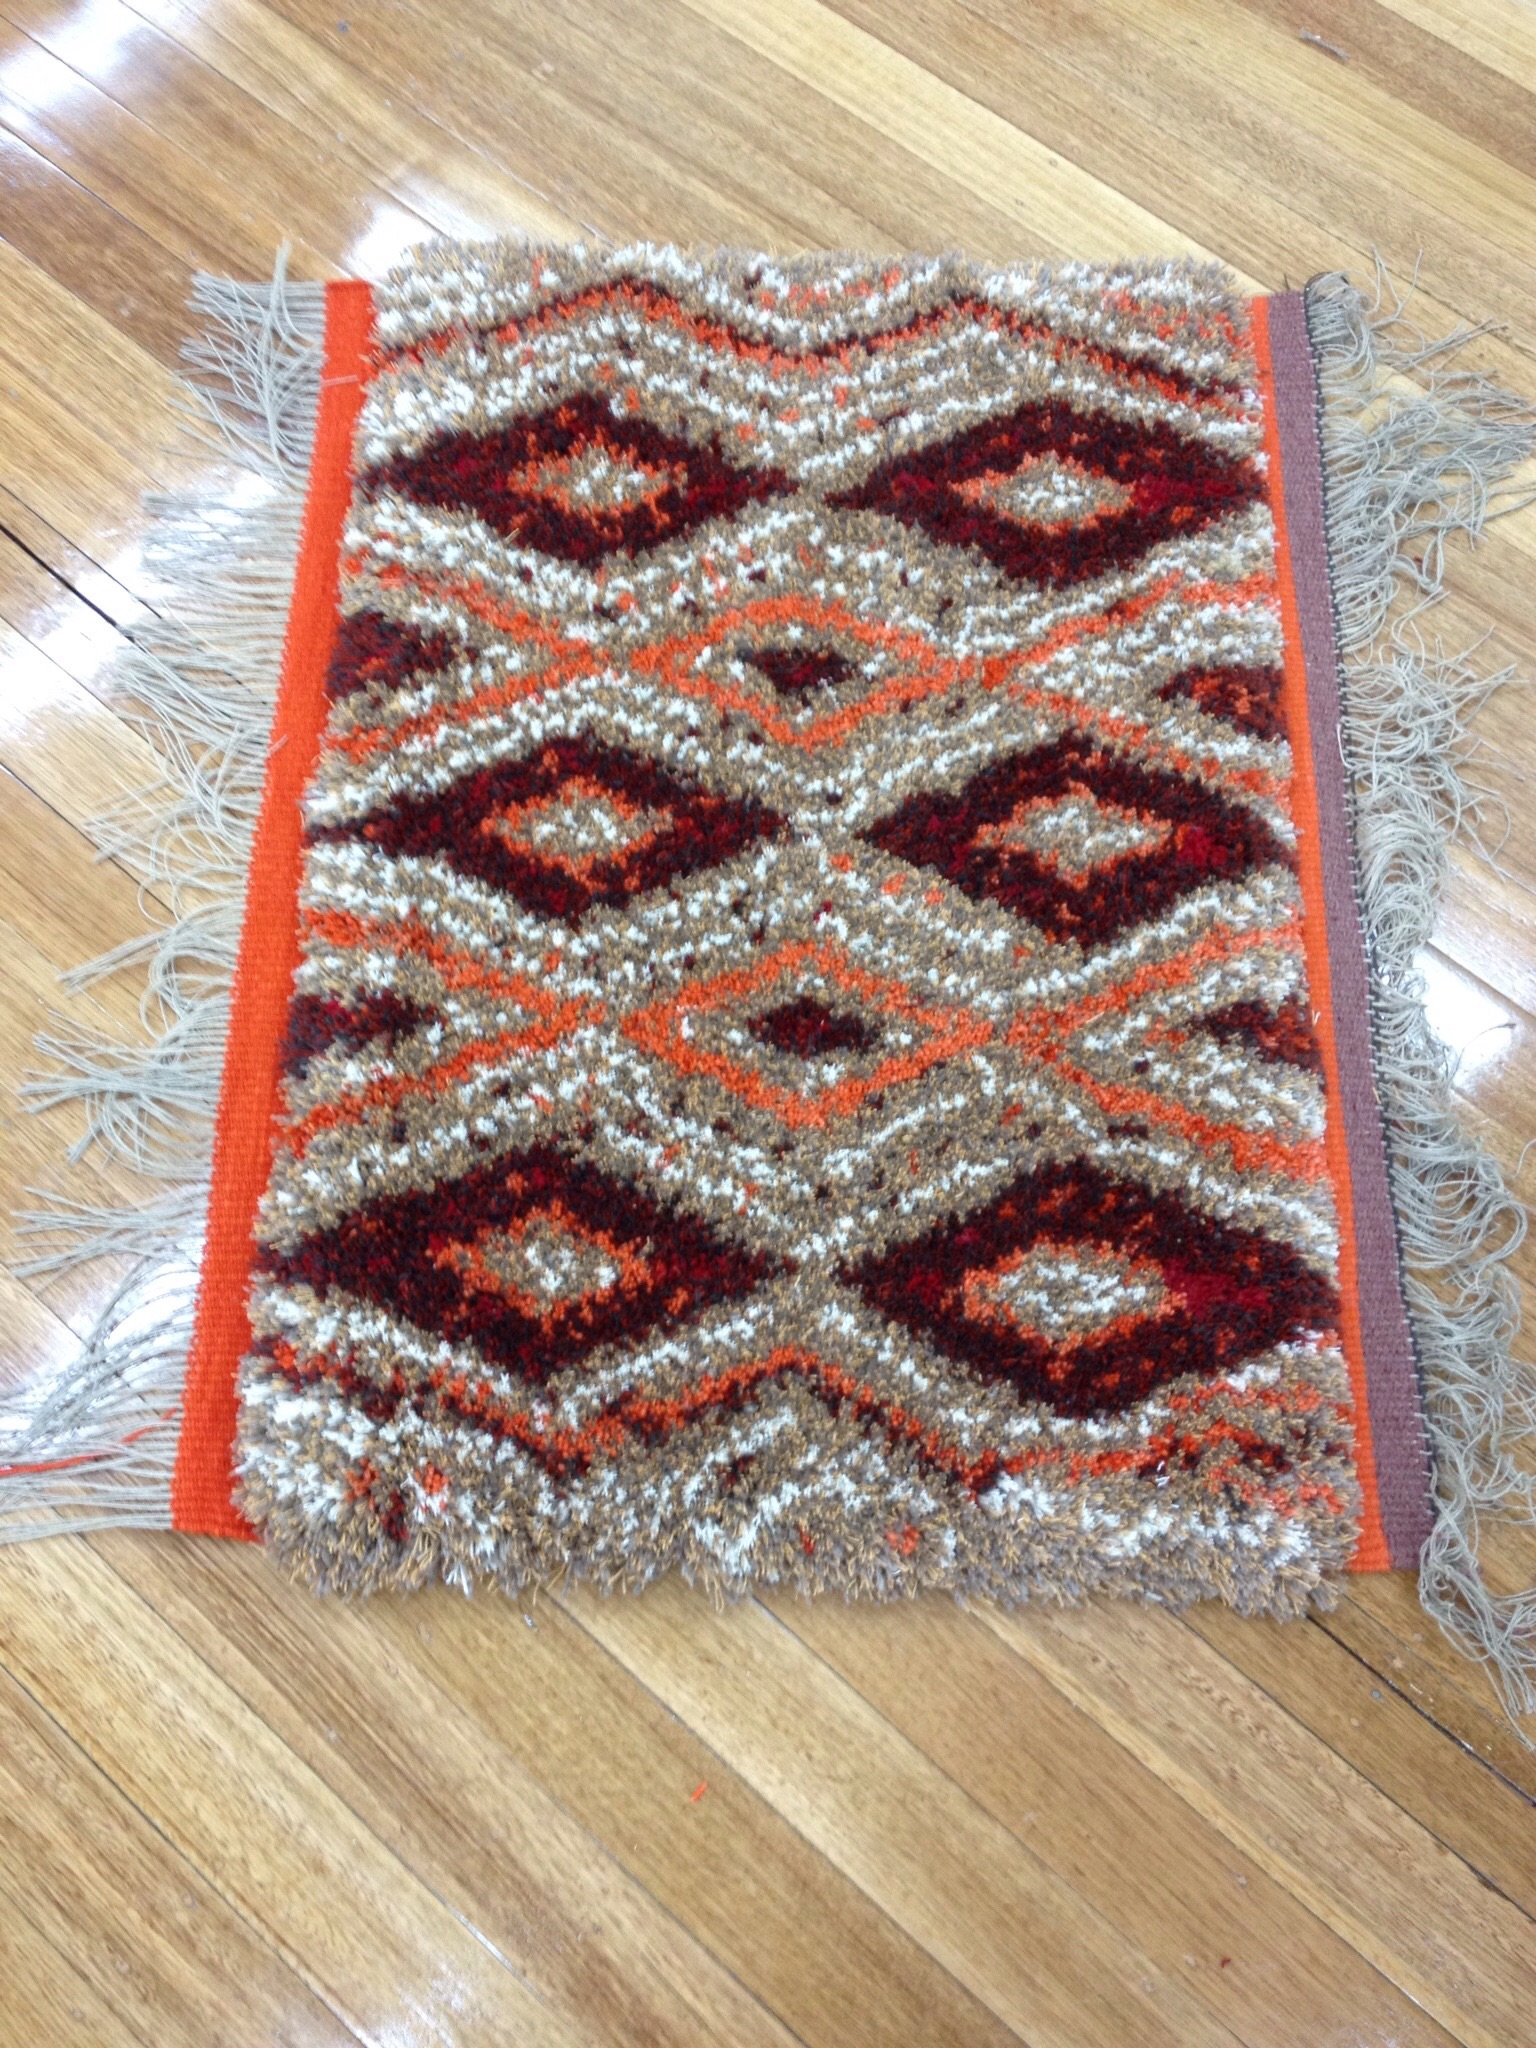 Rug off the loom, ready to do the ends.